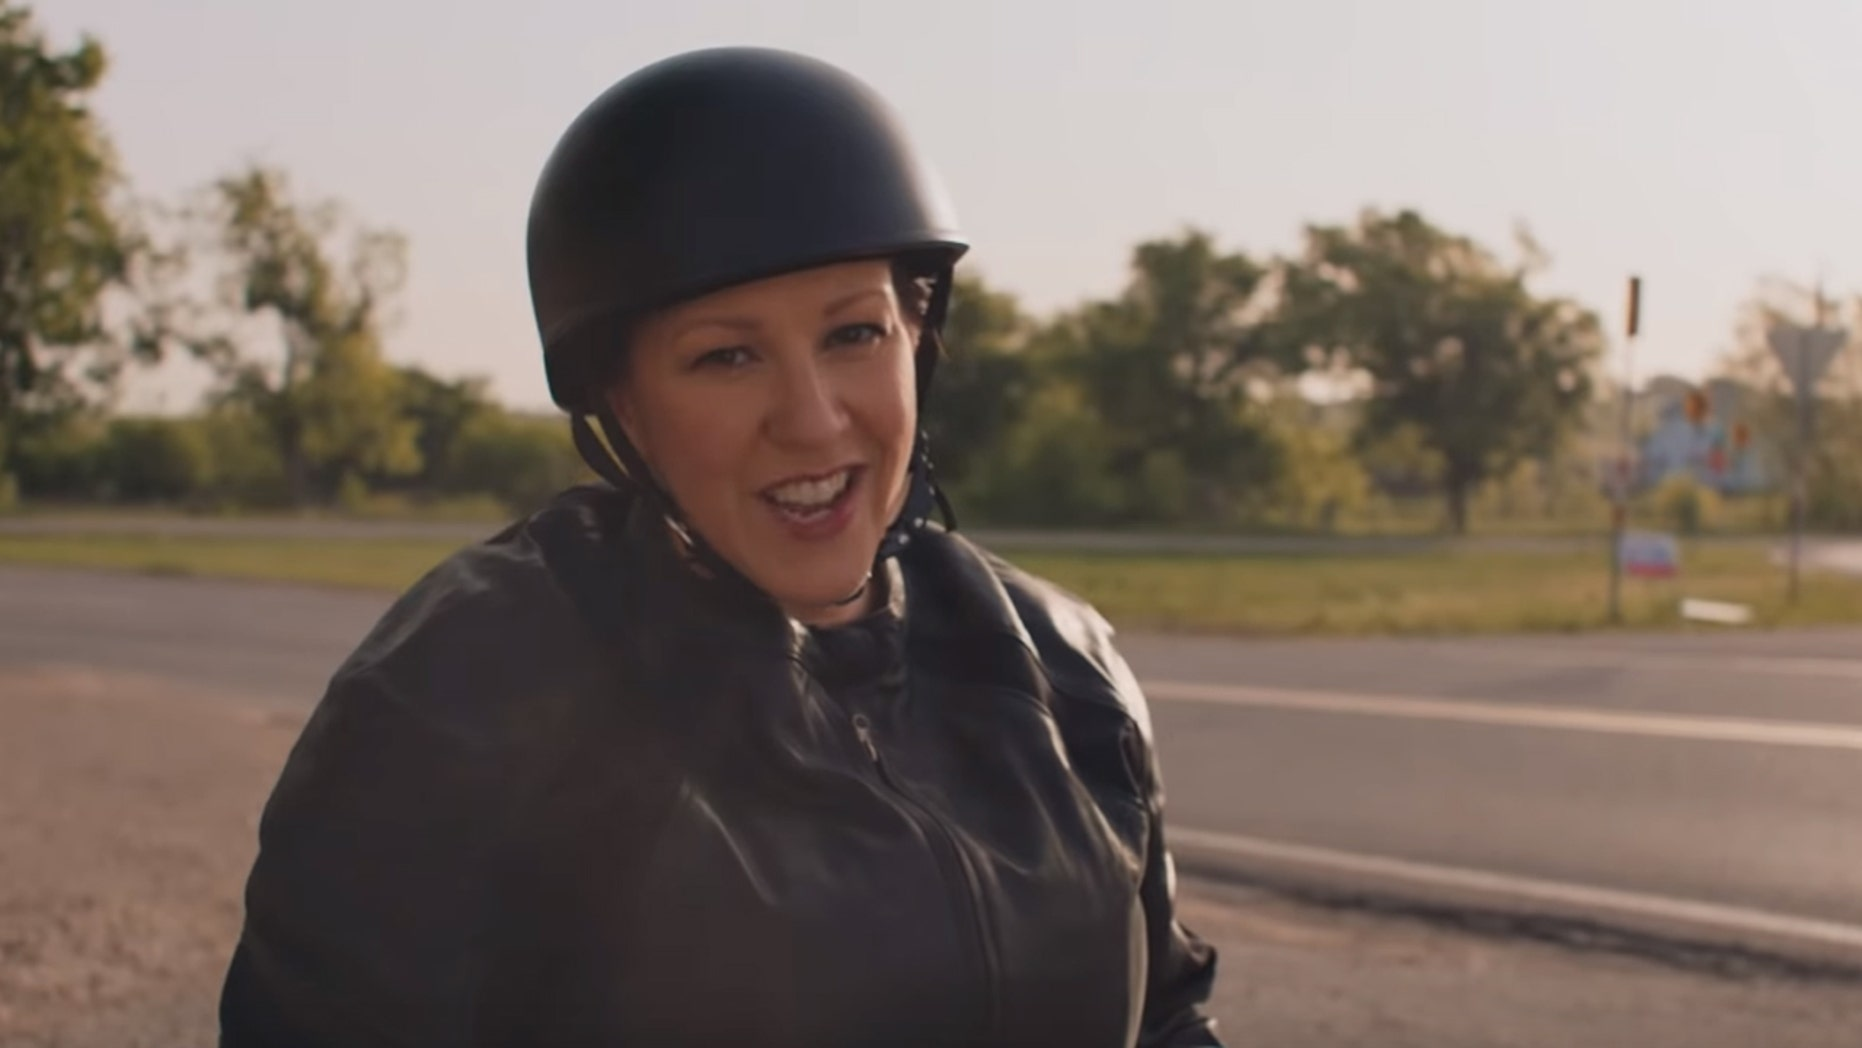 MJ Hegar, a former Air Force helicopter pilot declared her intent to run for one of Texas' Senate seat against Sen. John Cornyn.